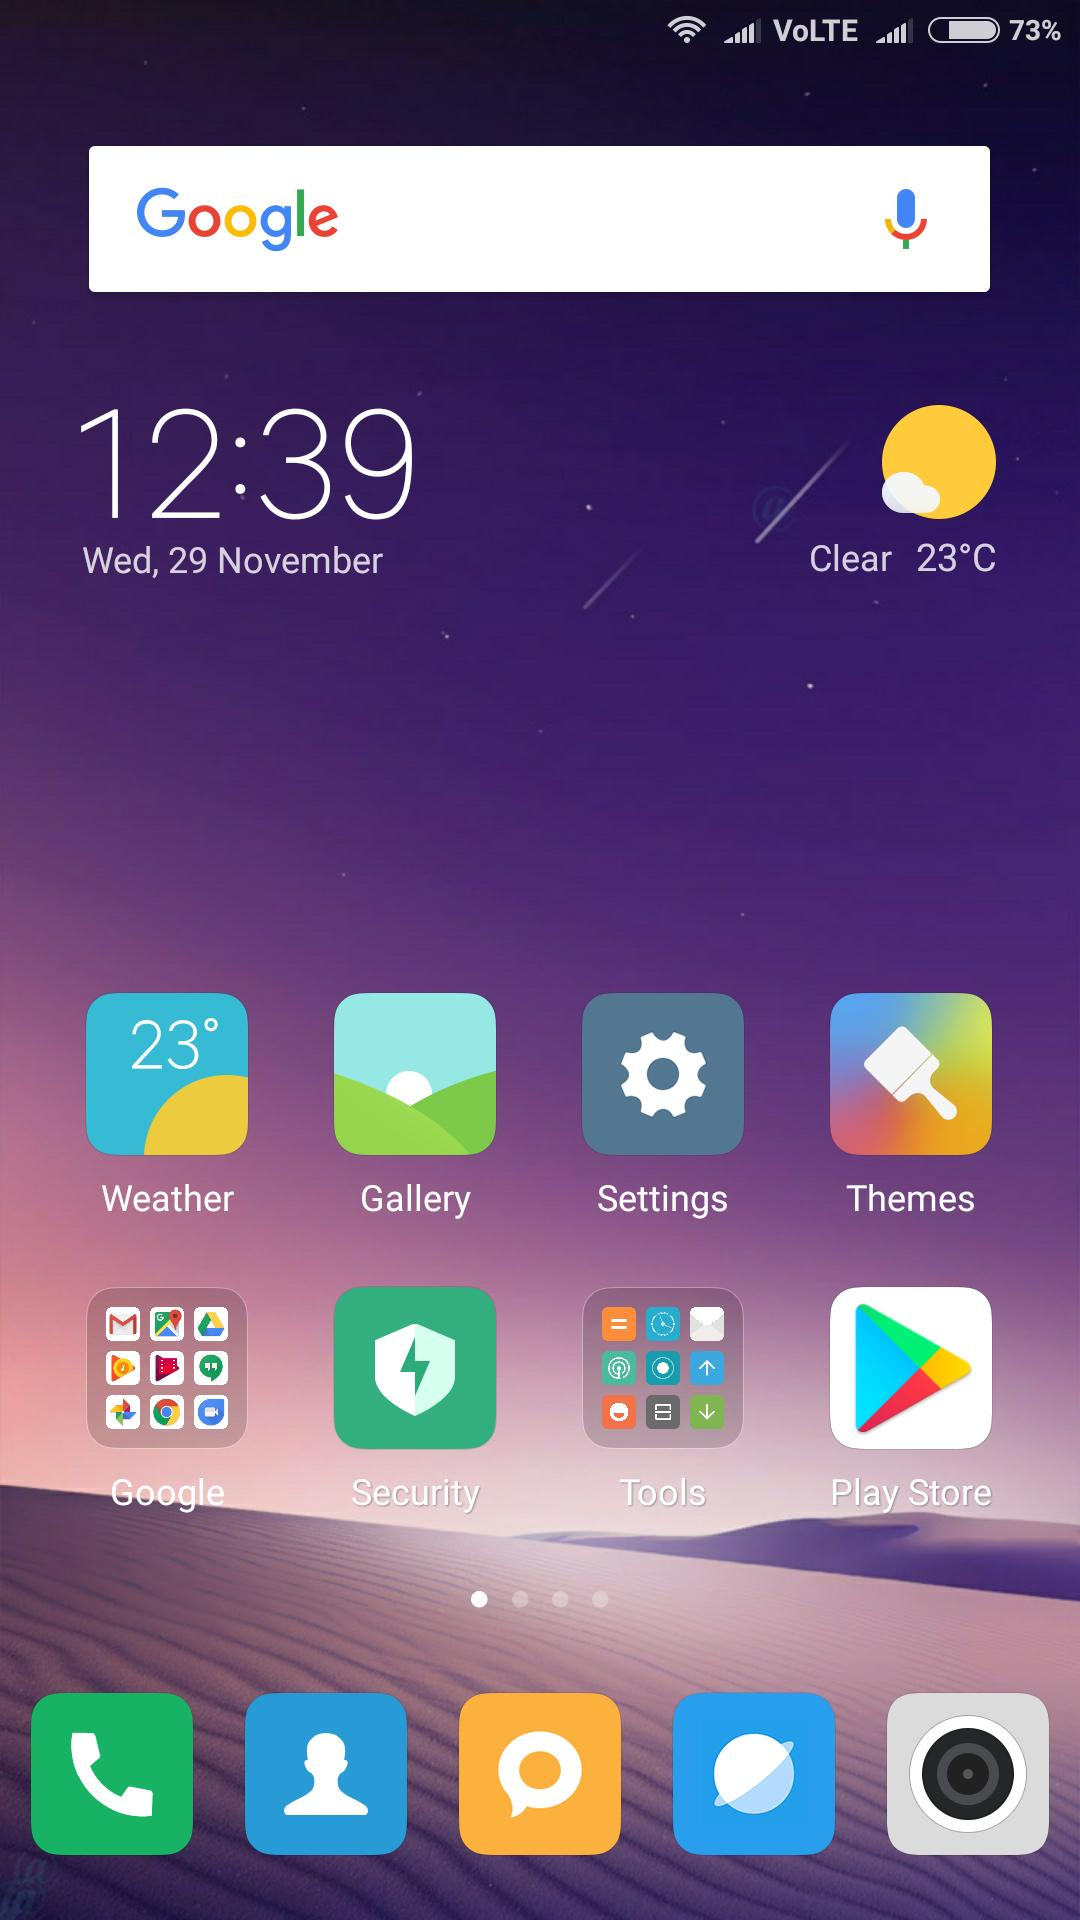 HD Wallpaper For Vivo V7 Plus for Android - APK Download